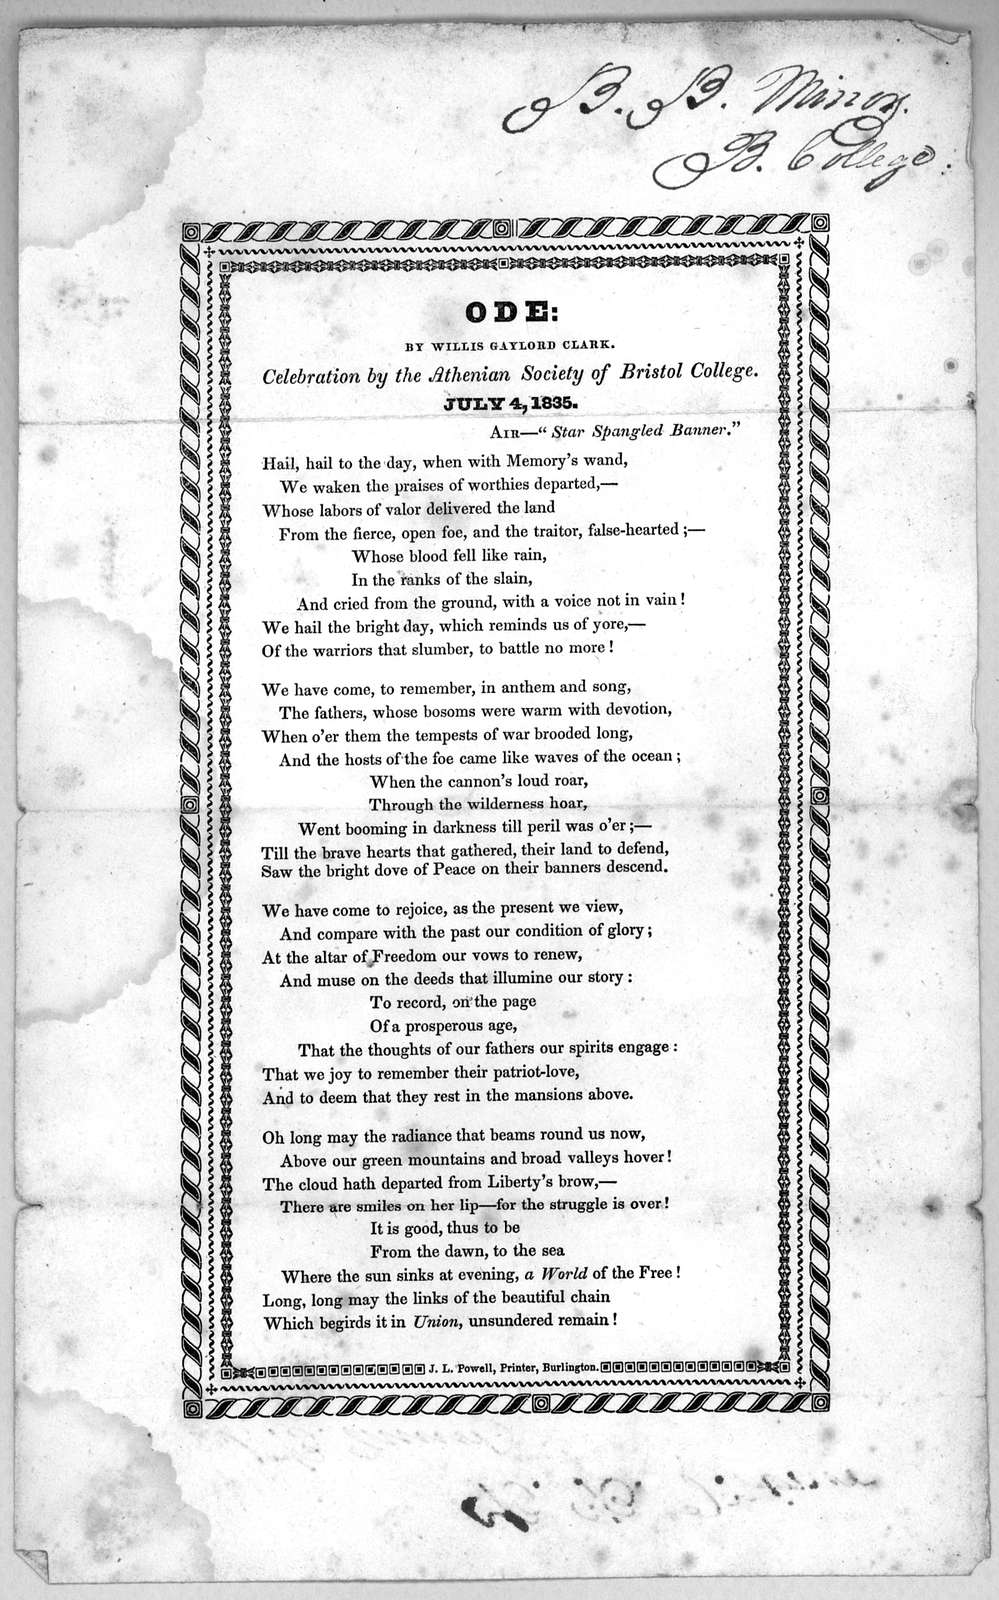 Ode by Willis Gaylord Clark. Celebration of the Athenian Society of Bristol College. July 4, 1835. Burlington, J. L. Powell printer [1835].